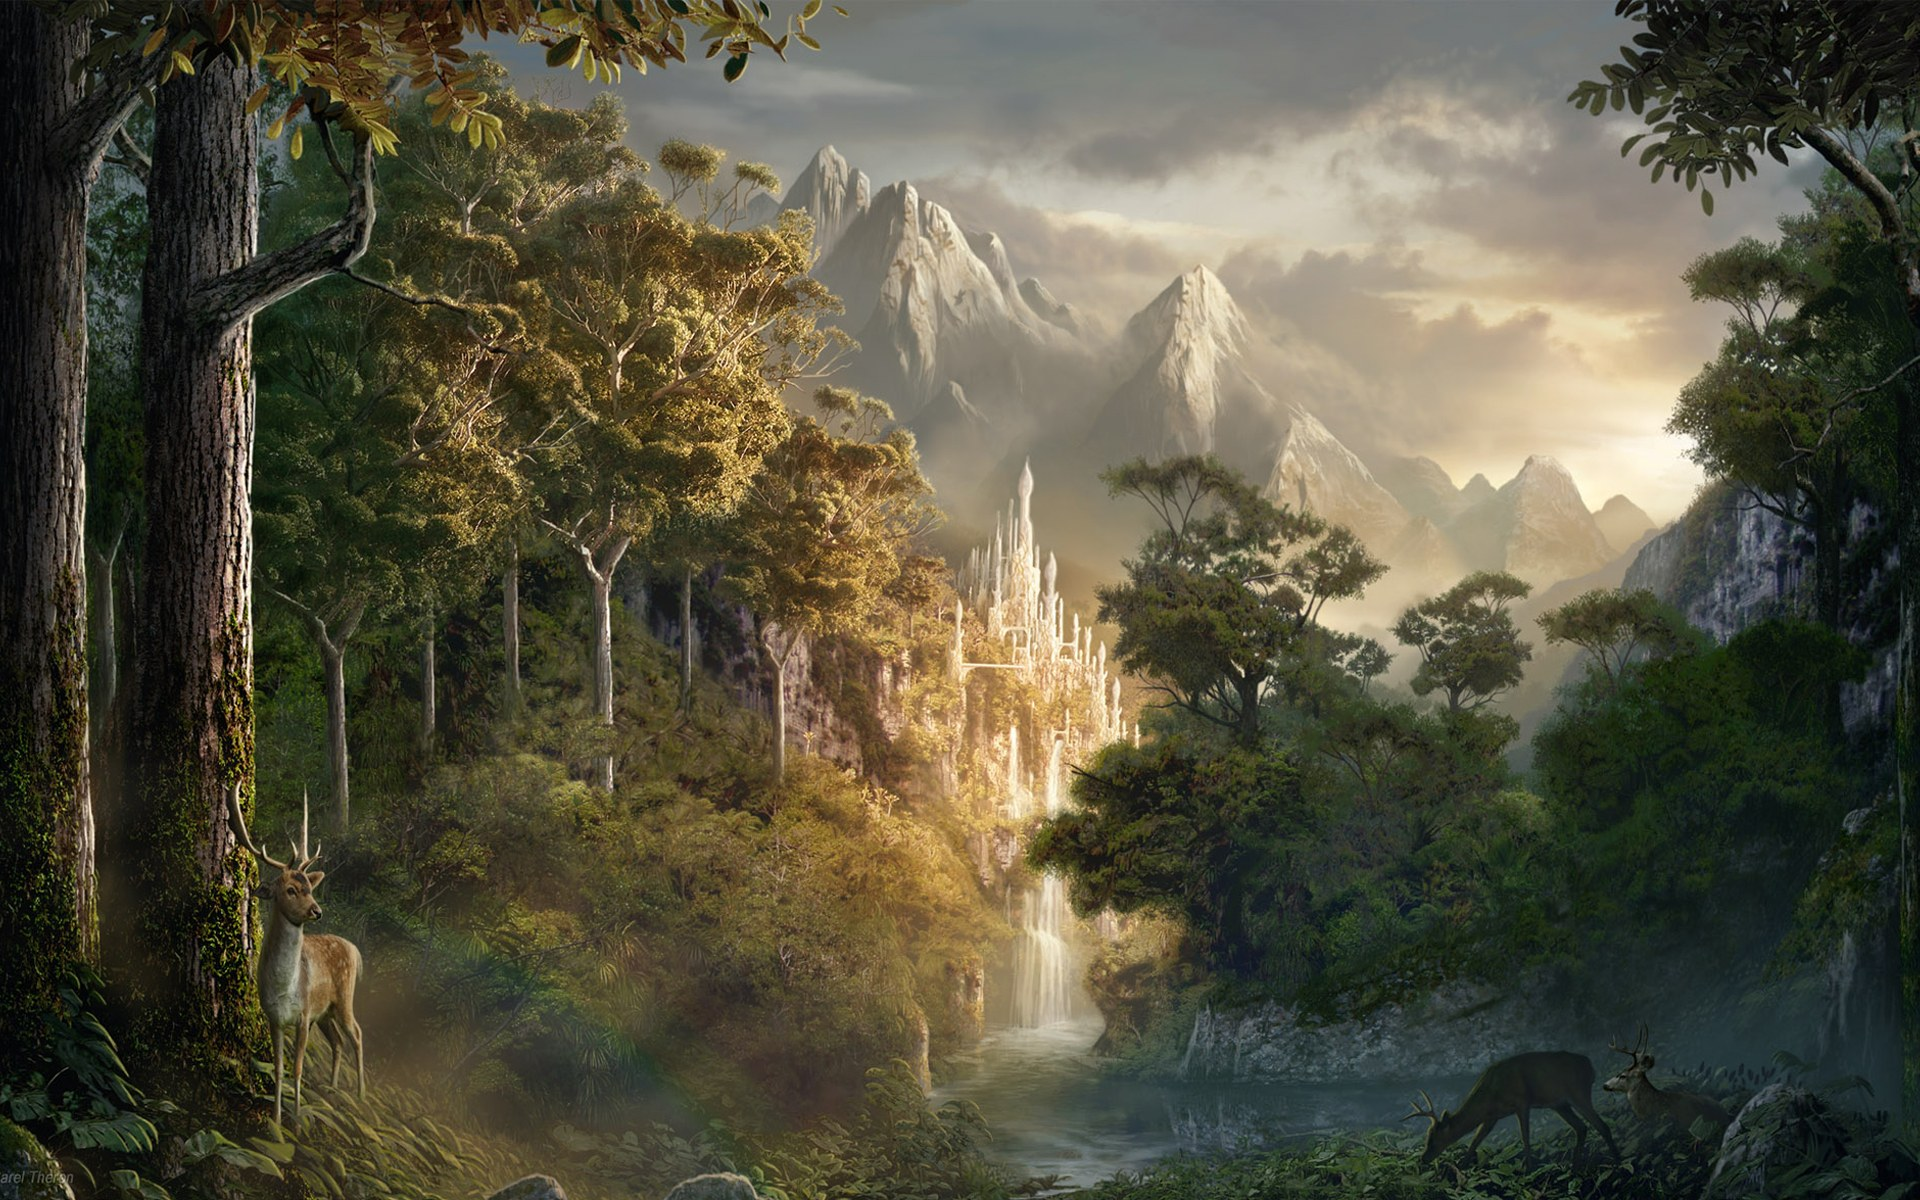 Fantasy Art Forest HD Wallpaper Desktop #3012 Wallpaper .